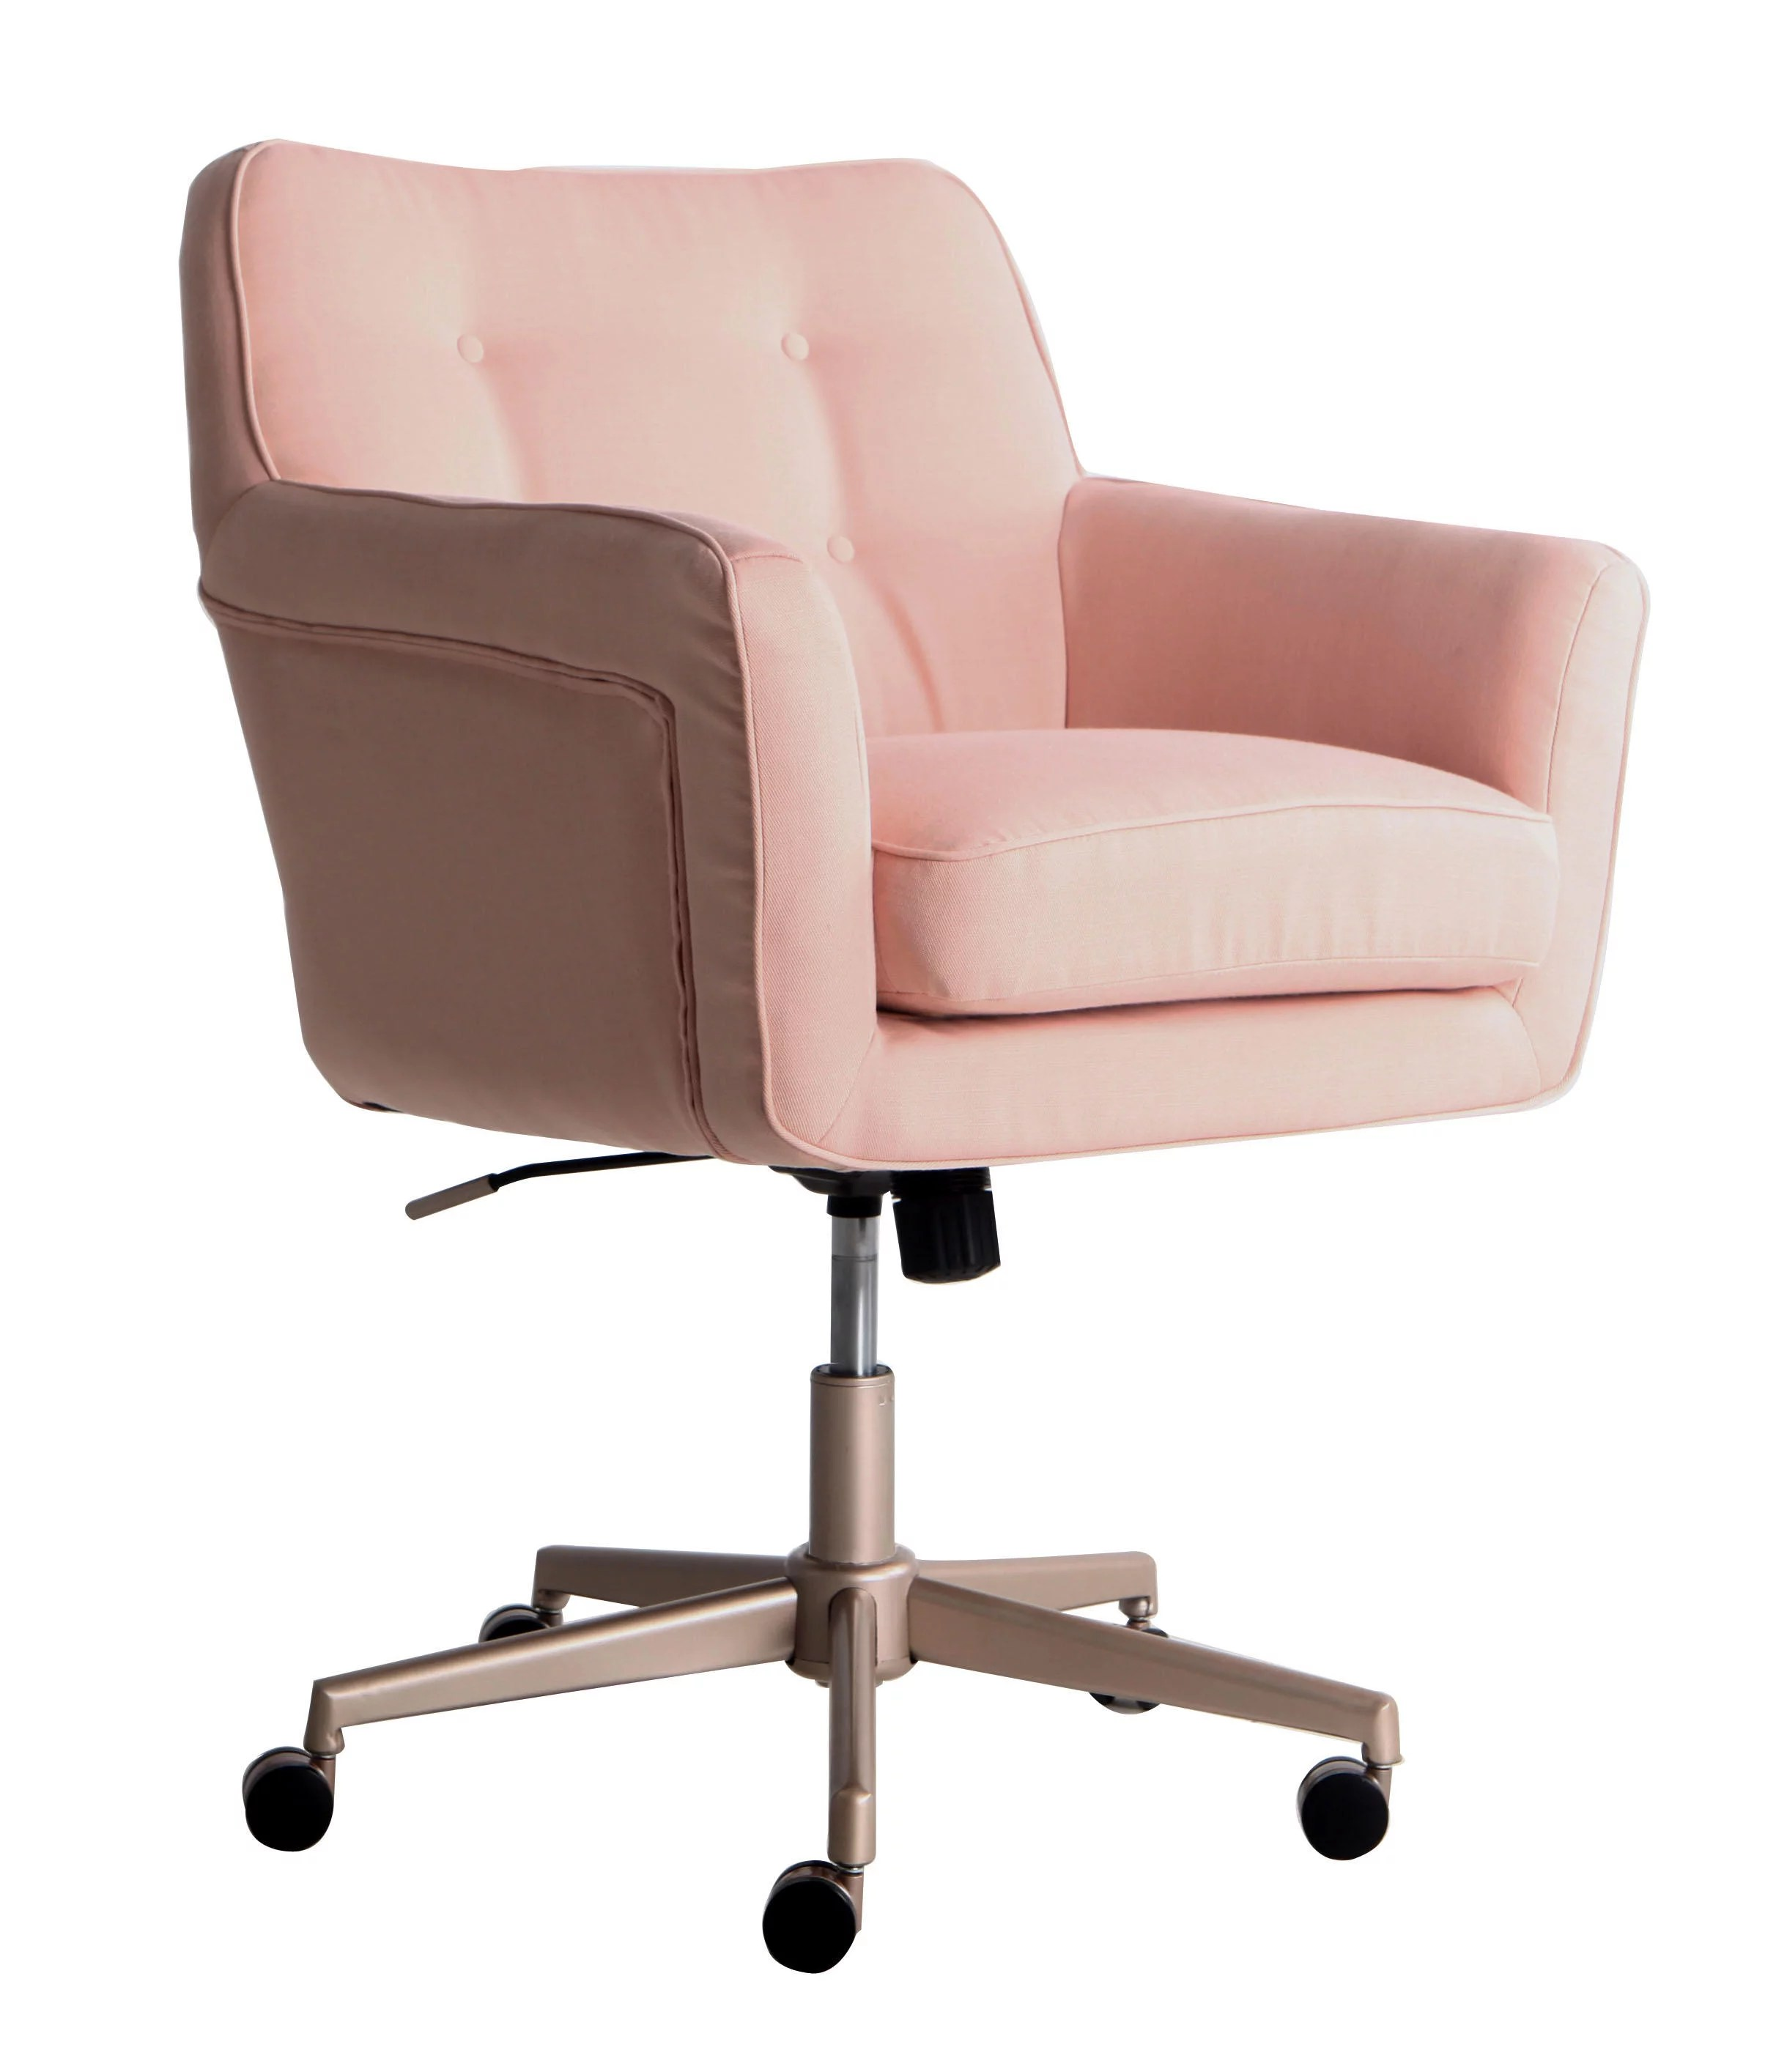 Pink Office Chairs Serta Style Ashland Home Office Chair Blush Pink Twill Fabric